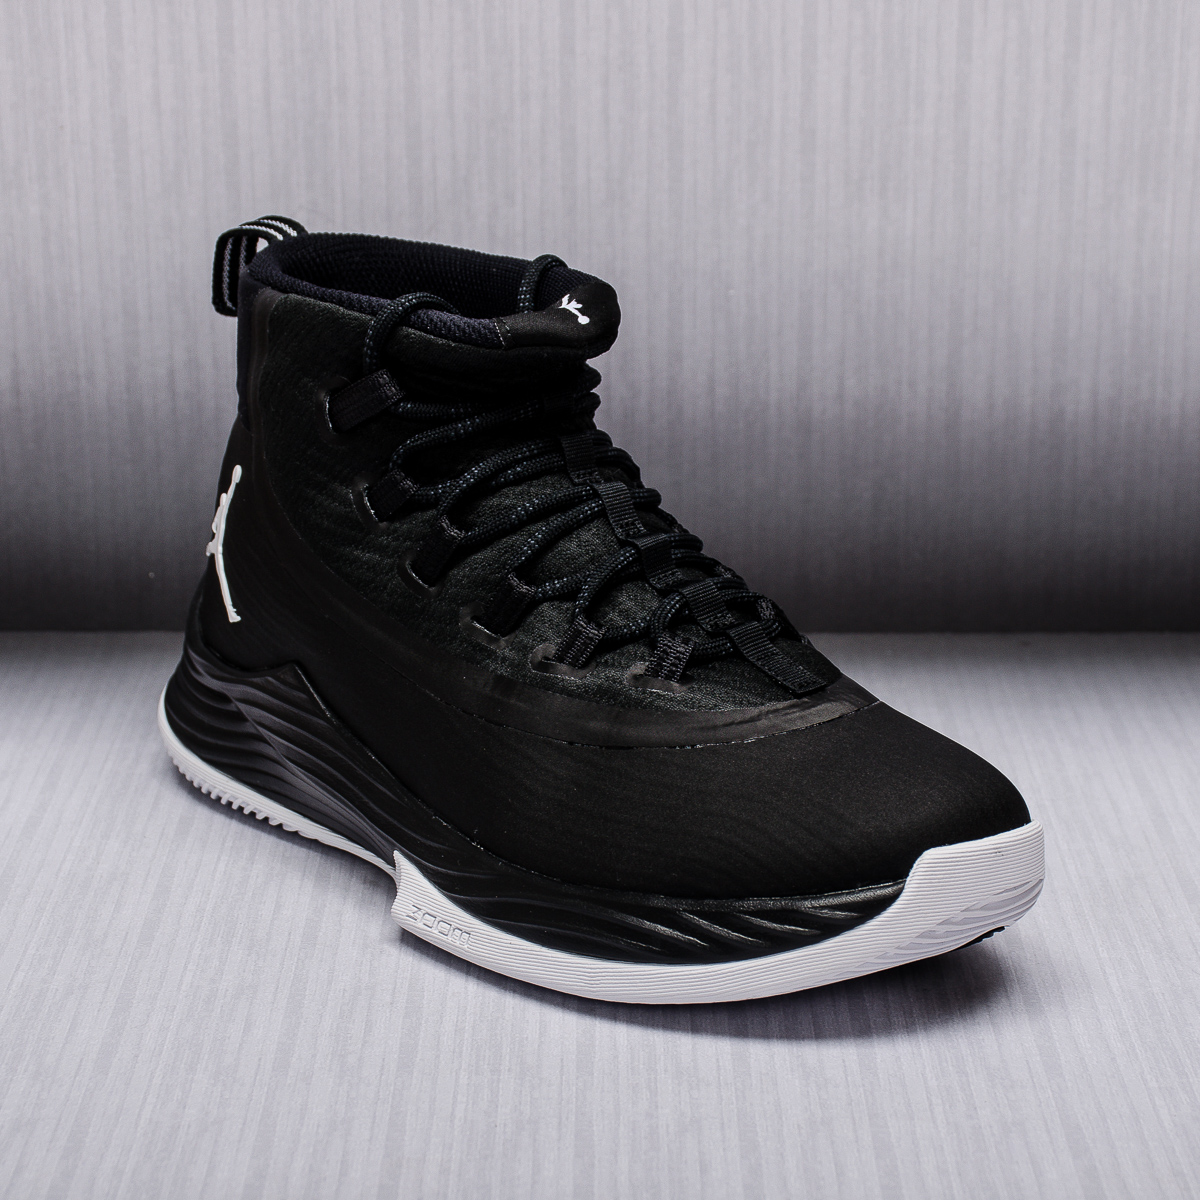 wholesale dealer 3db81 8a625 Jordan Ultra Fly 2 (Size 43) - BASKETBALL SHOES JORDAN ...